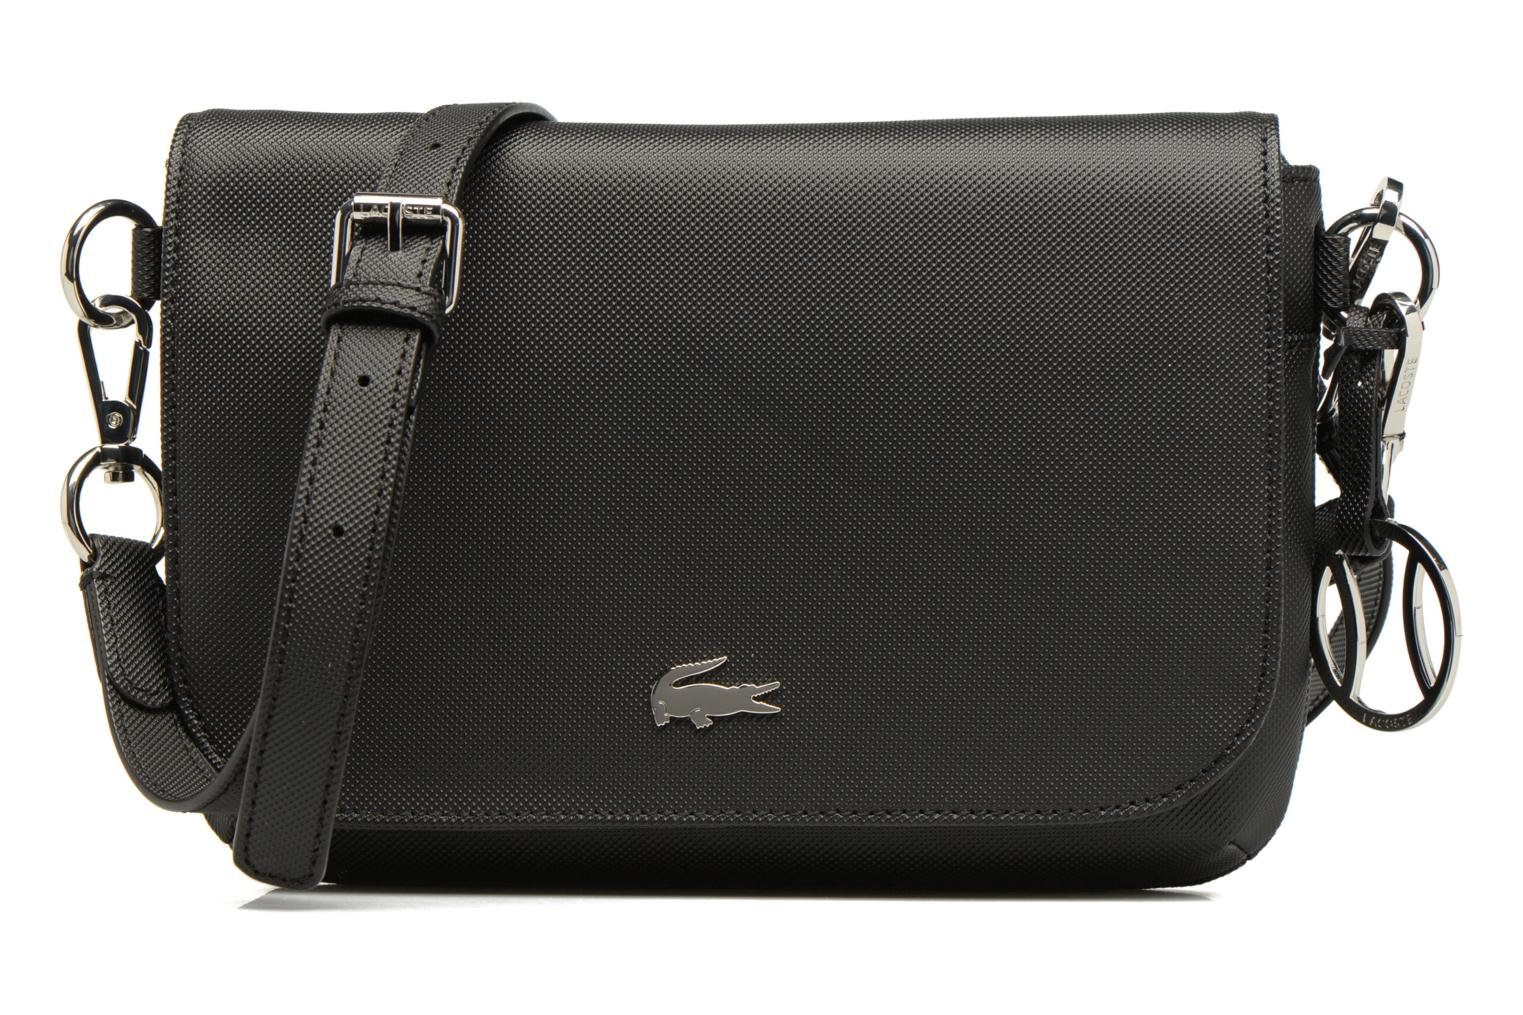 handtassen-daily-classic-crossover-bag-s-by-lacoste